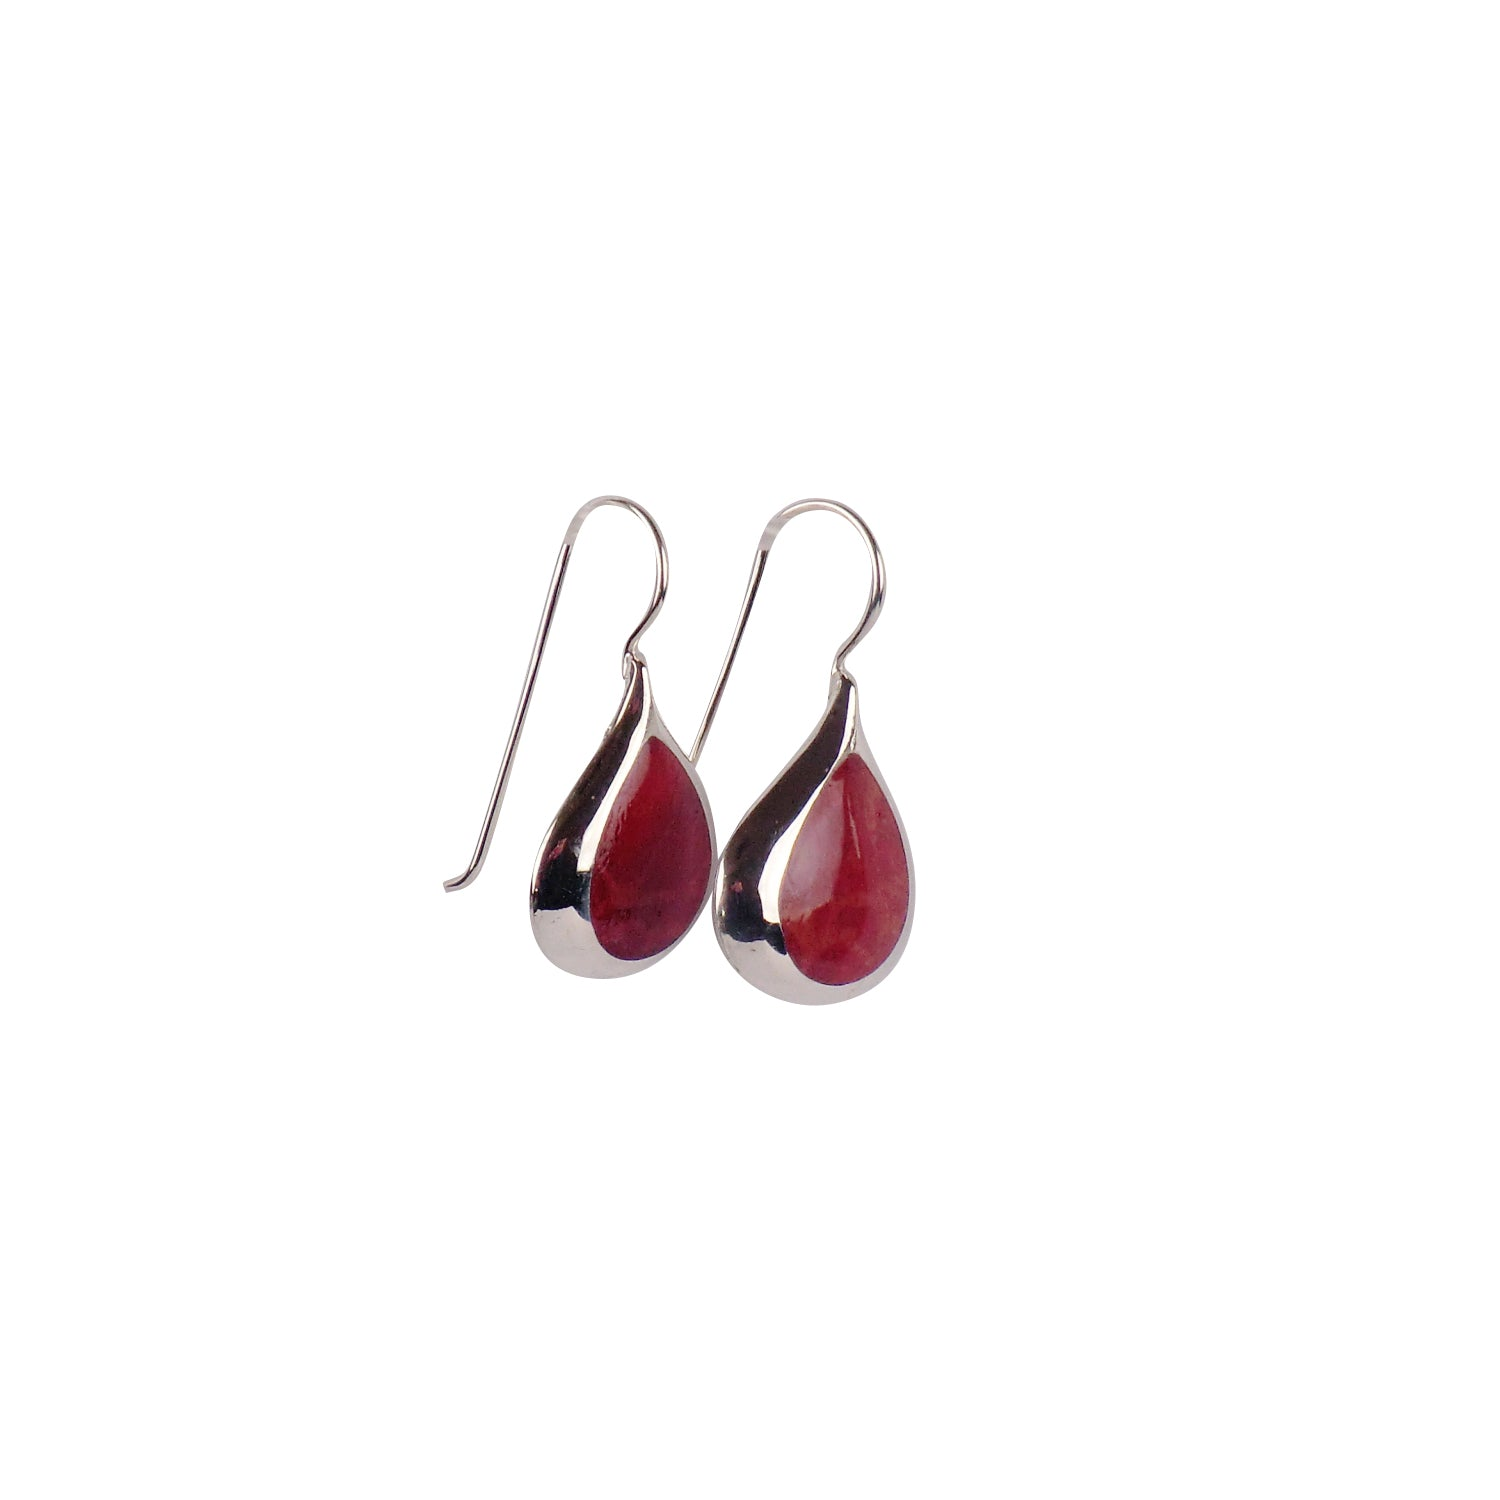 Droplet Earrings - Matico